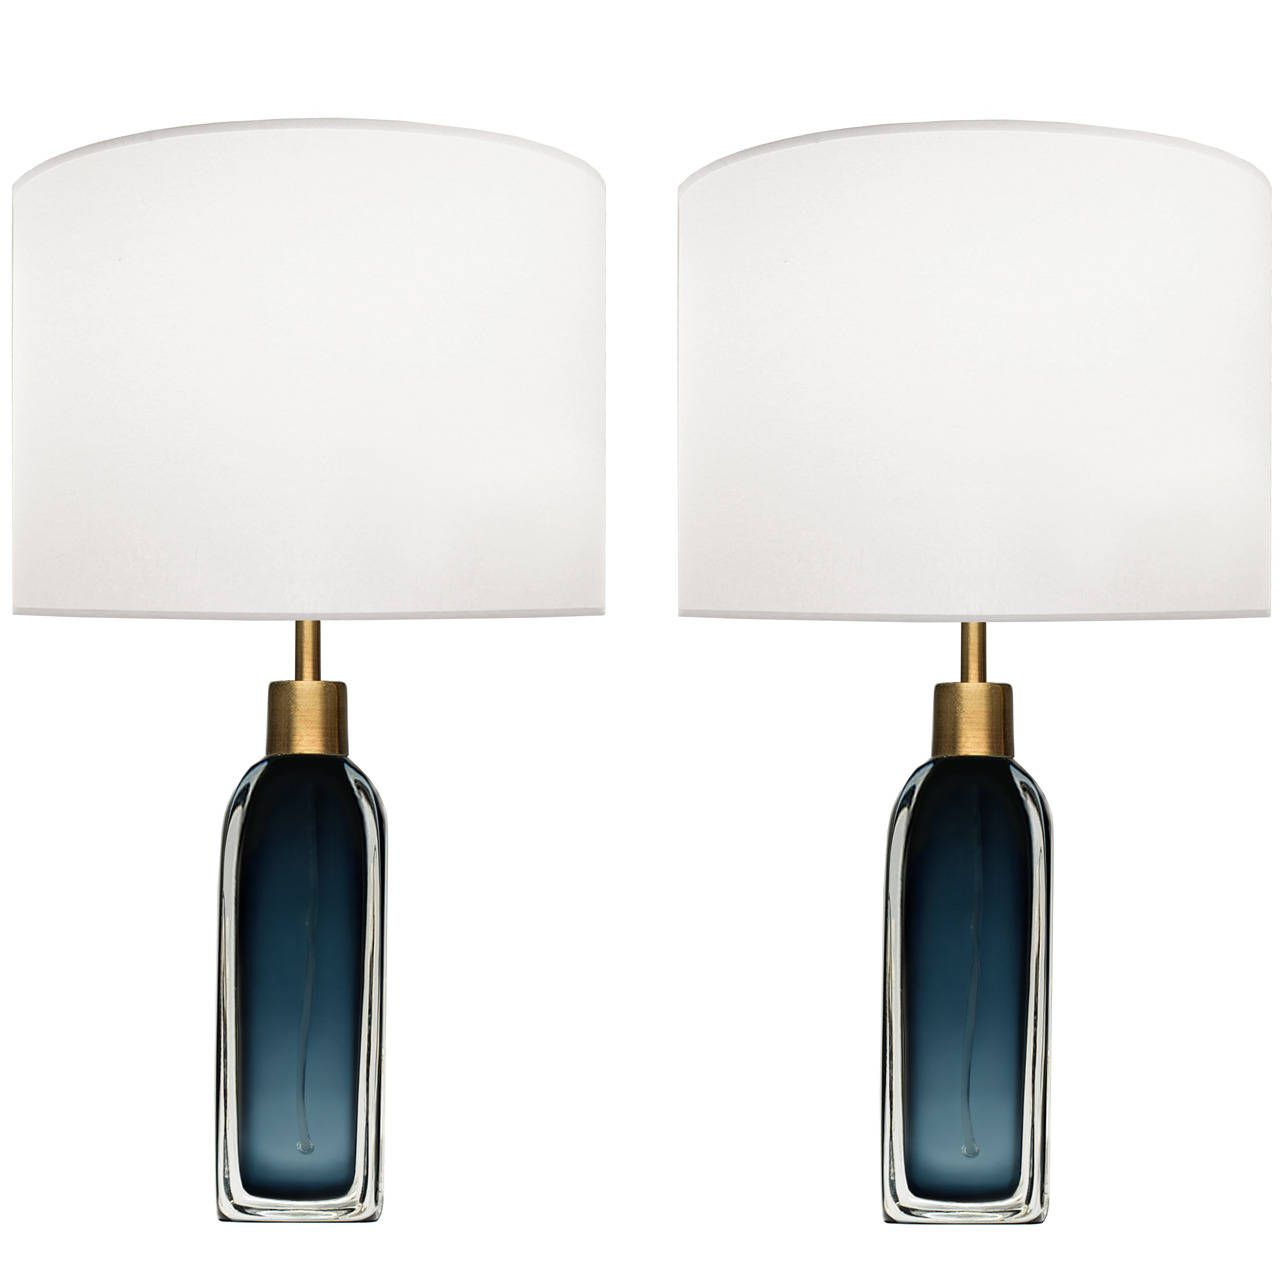 Pair Of Nils Landberg For Orrefors Blue Glass Lamps From A